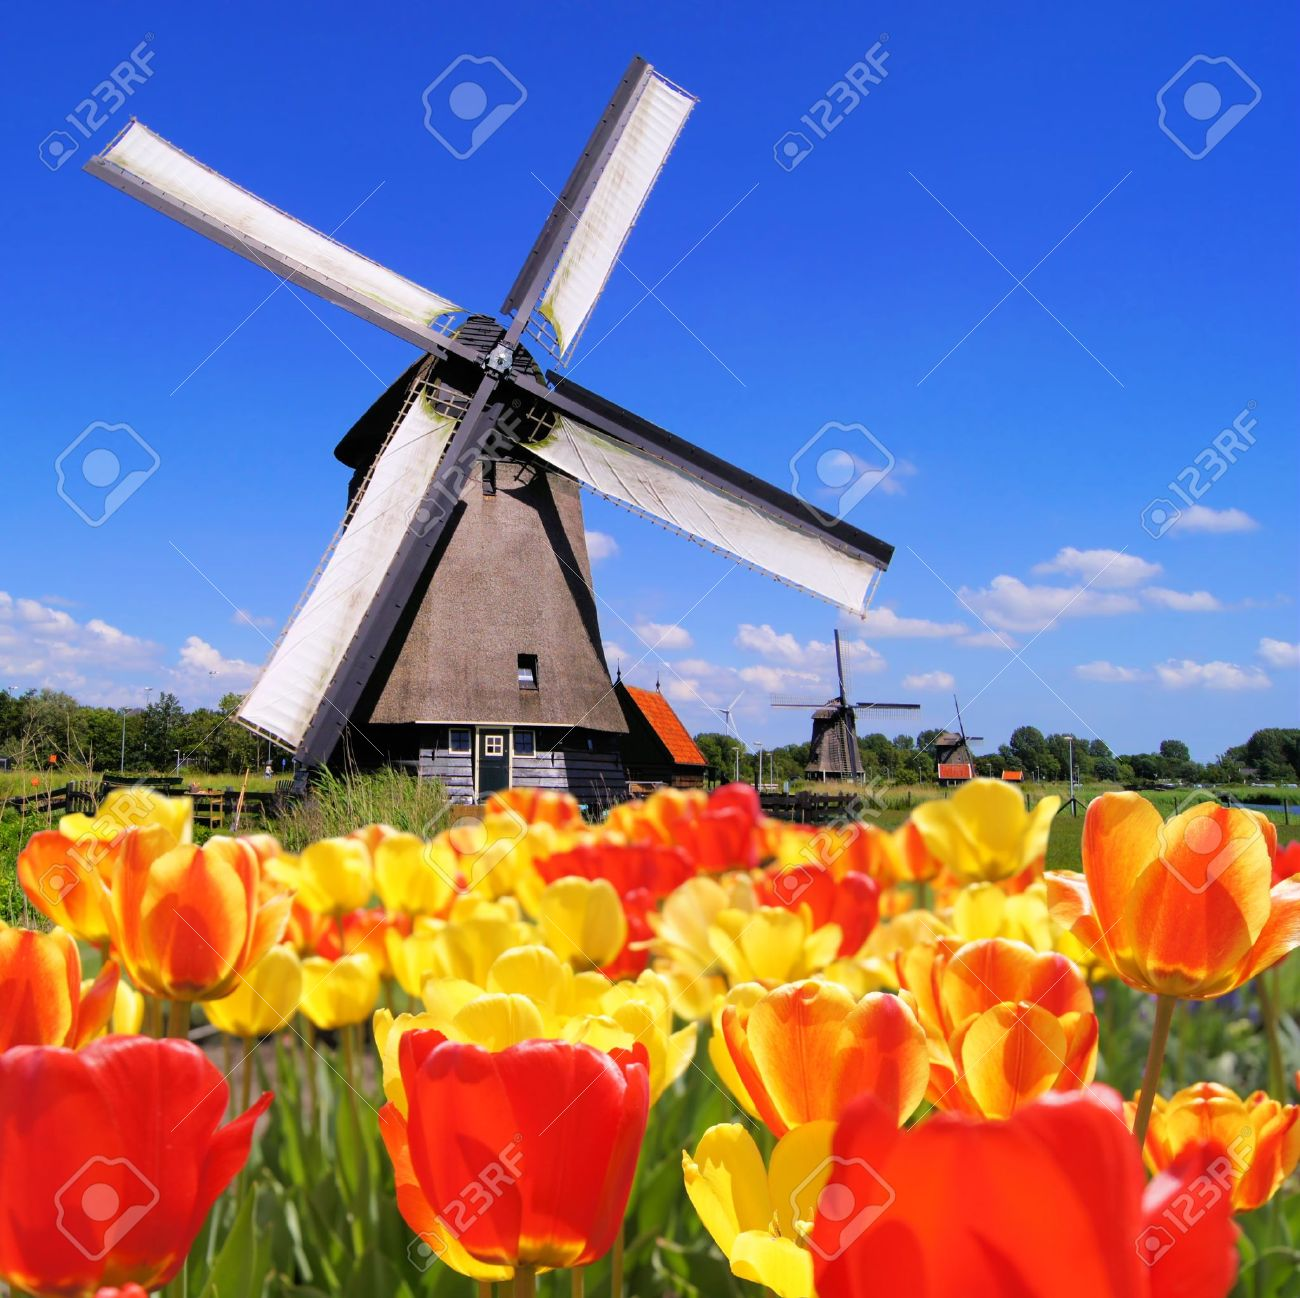 Traditional Dutch windmills with vibrant tulips in the foreground, The Netherlands Stock Photo - 14615182